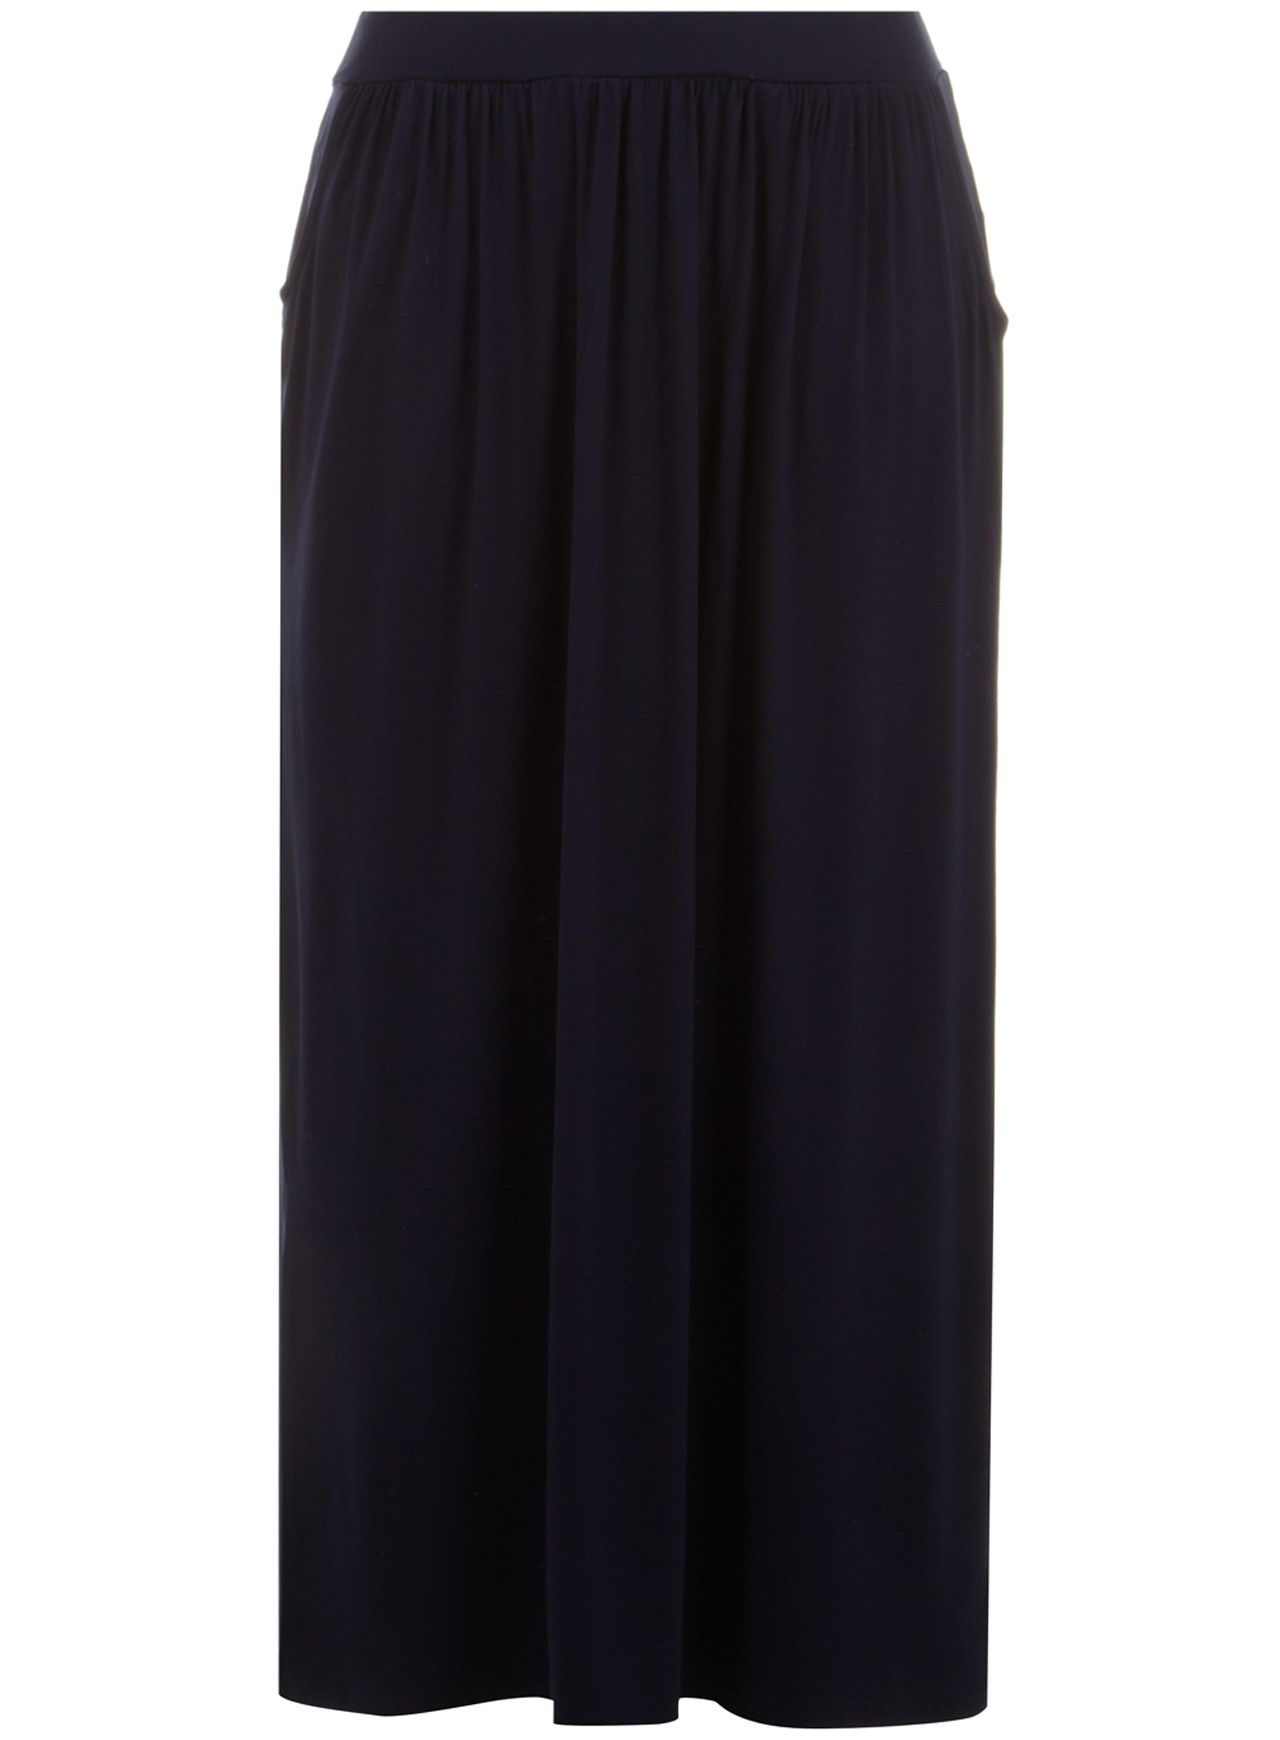 Navy Pocket Maxi Skirt